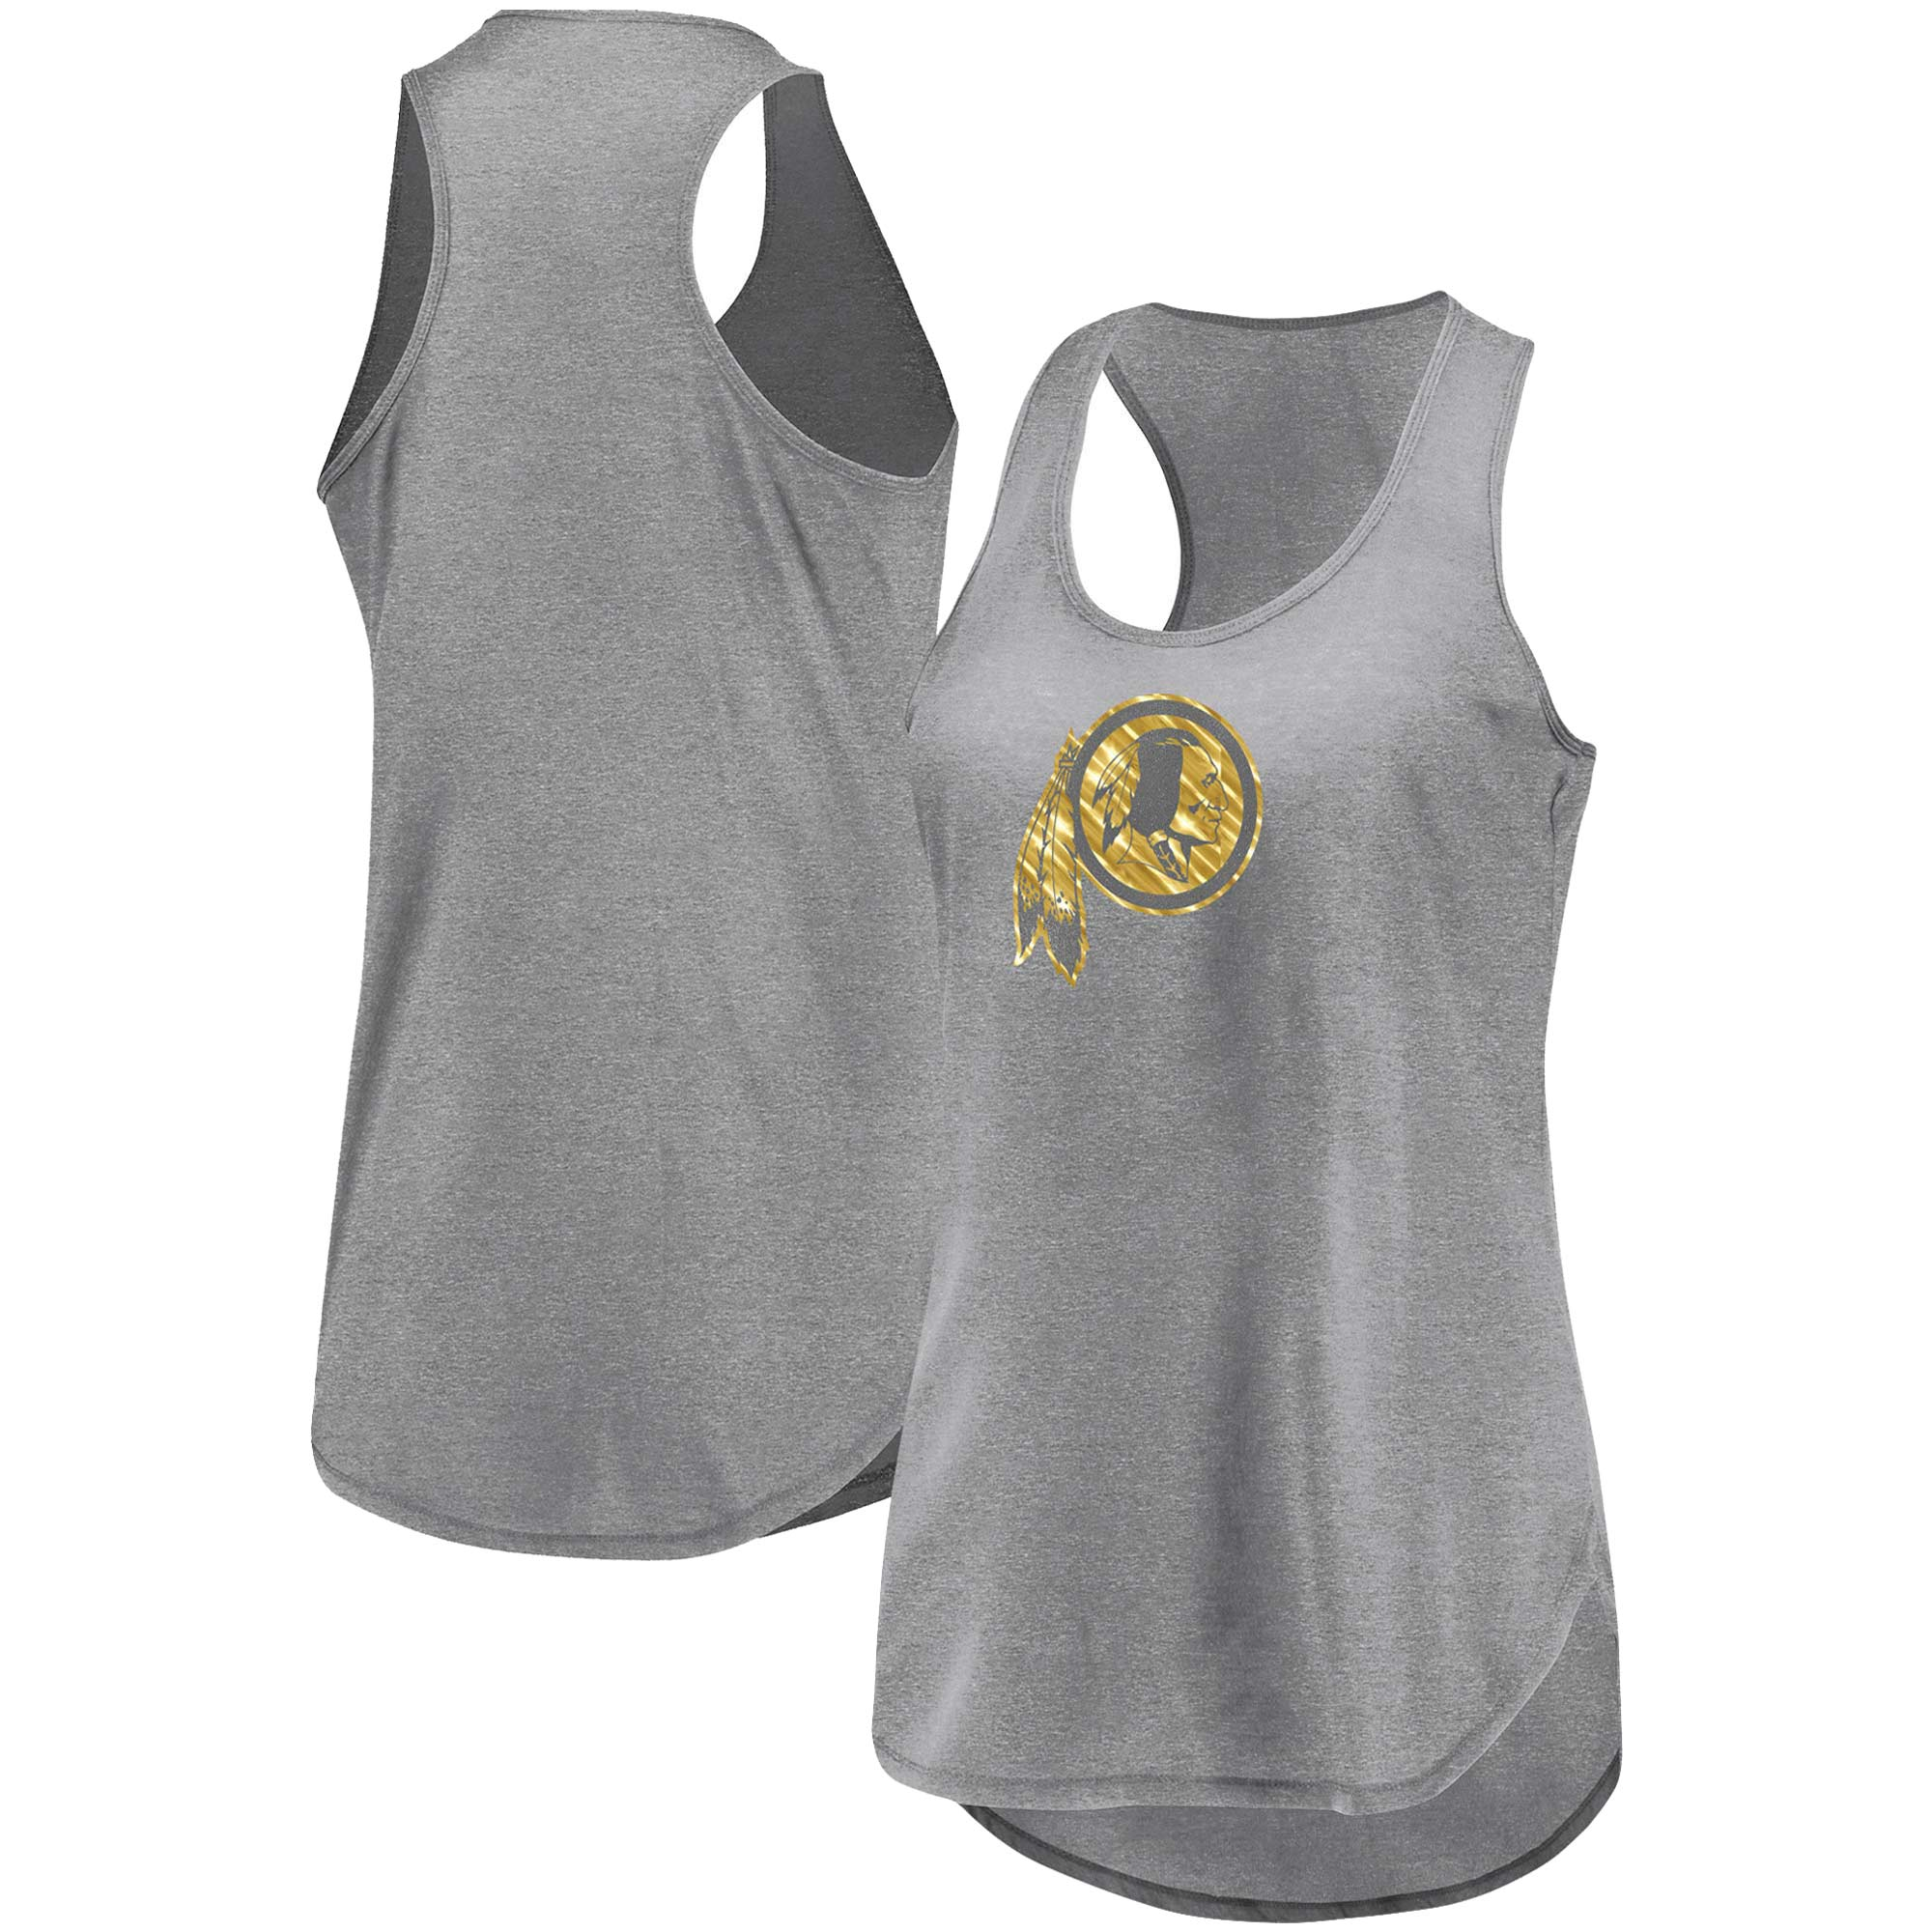 Washington Redskins Majestic Women's We're On Top Racerback Tank Top - Heathered Gray